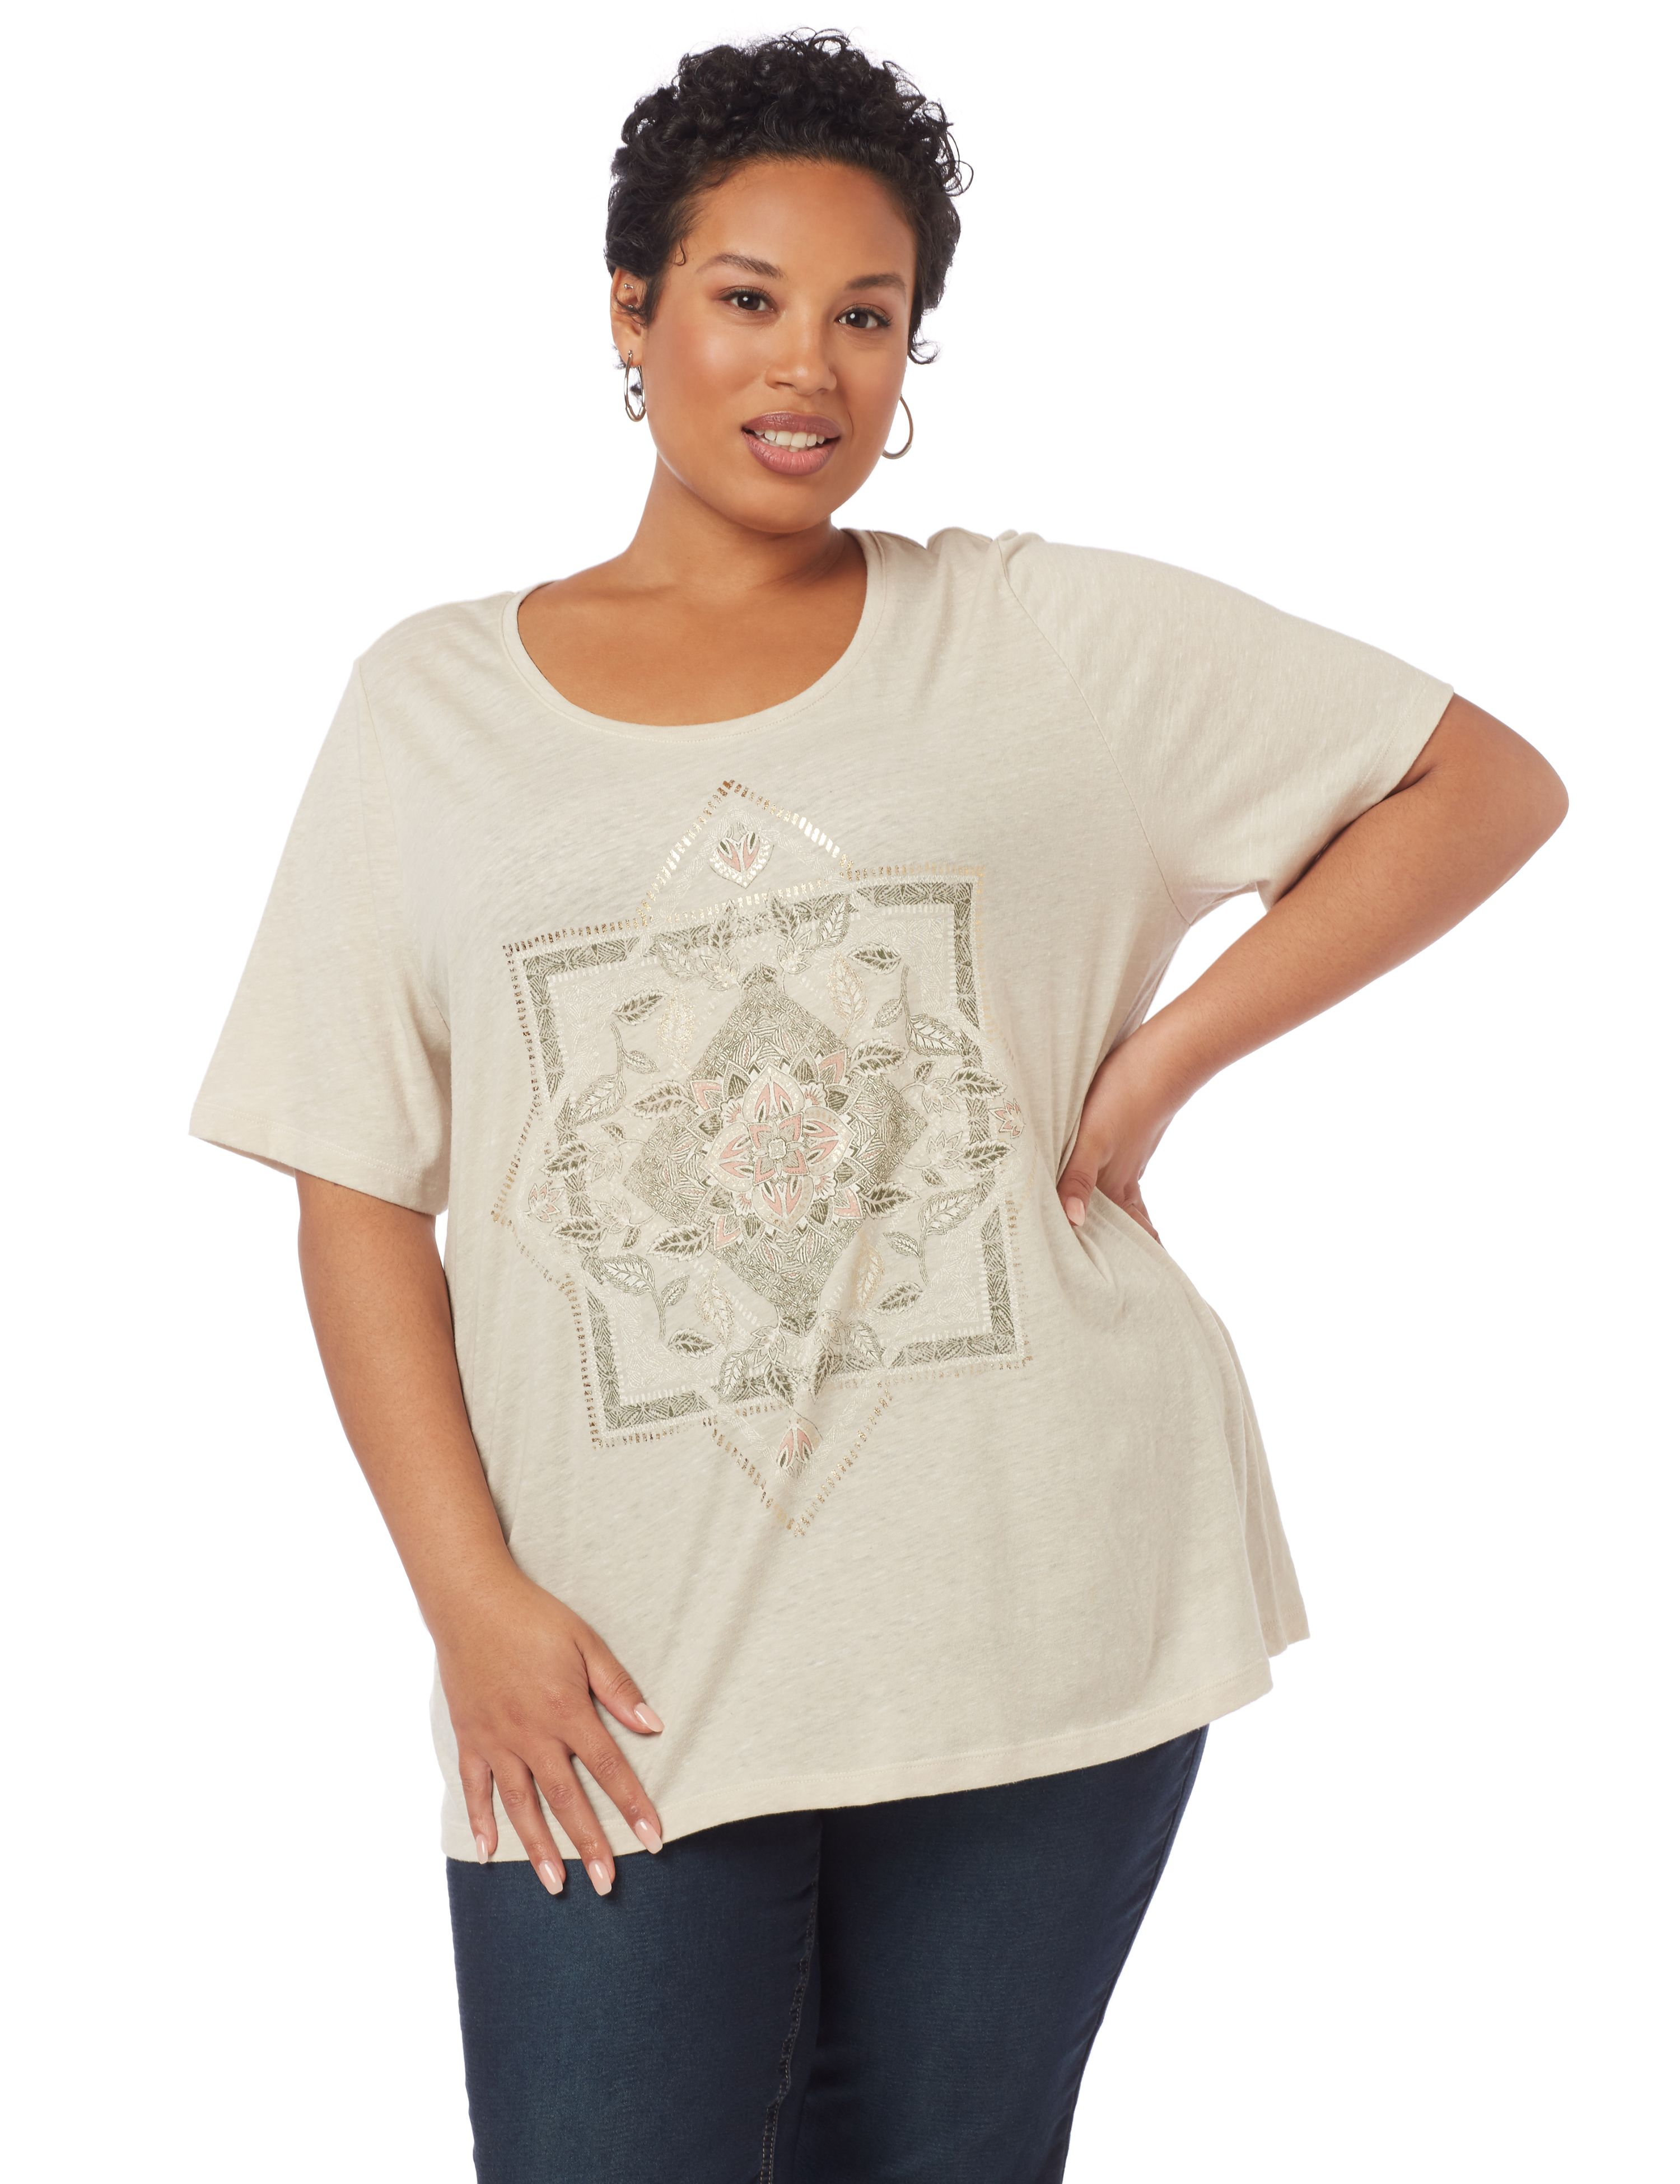 Stay Centered Short-Sleeve Top 1087879 SS SQUARE/TRIANGLE SCREEN MP-300094609